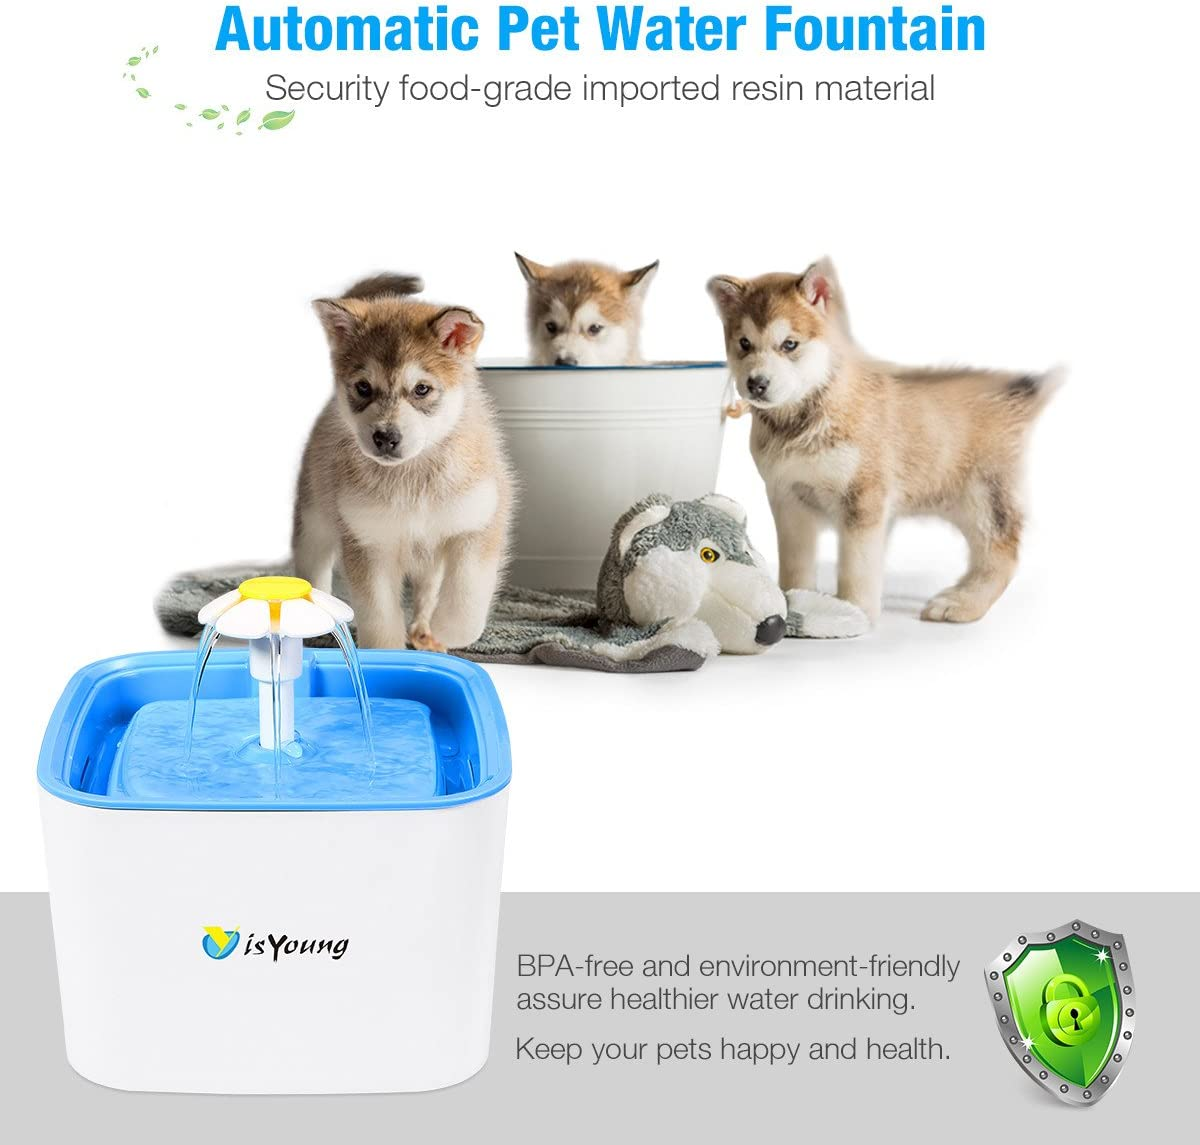 isYoung Pet Water Fountain, 84Oz 2.5L Super Quiet Automatic Electric Water Dispenser, Healthy and Hygienic Cat Drinking Fountain with 2 Replacement Filters for Dogs, Cat and Small Animals